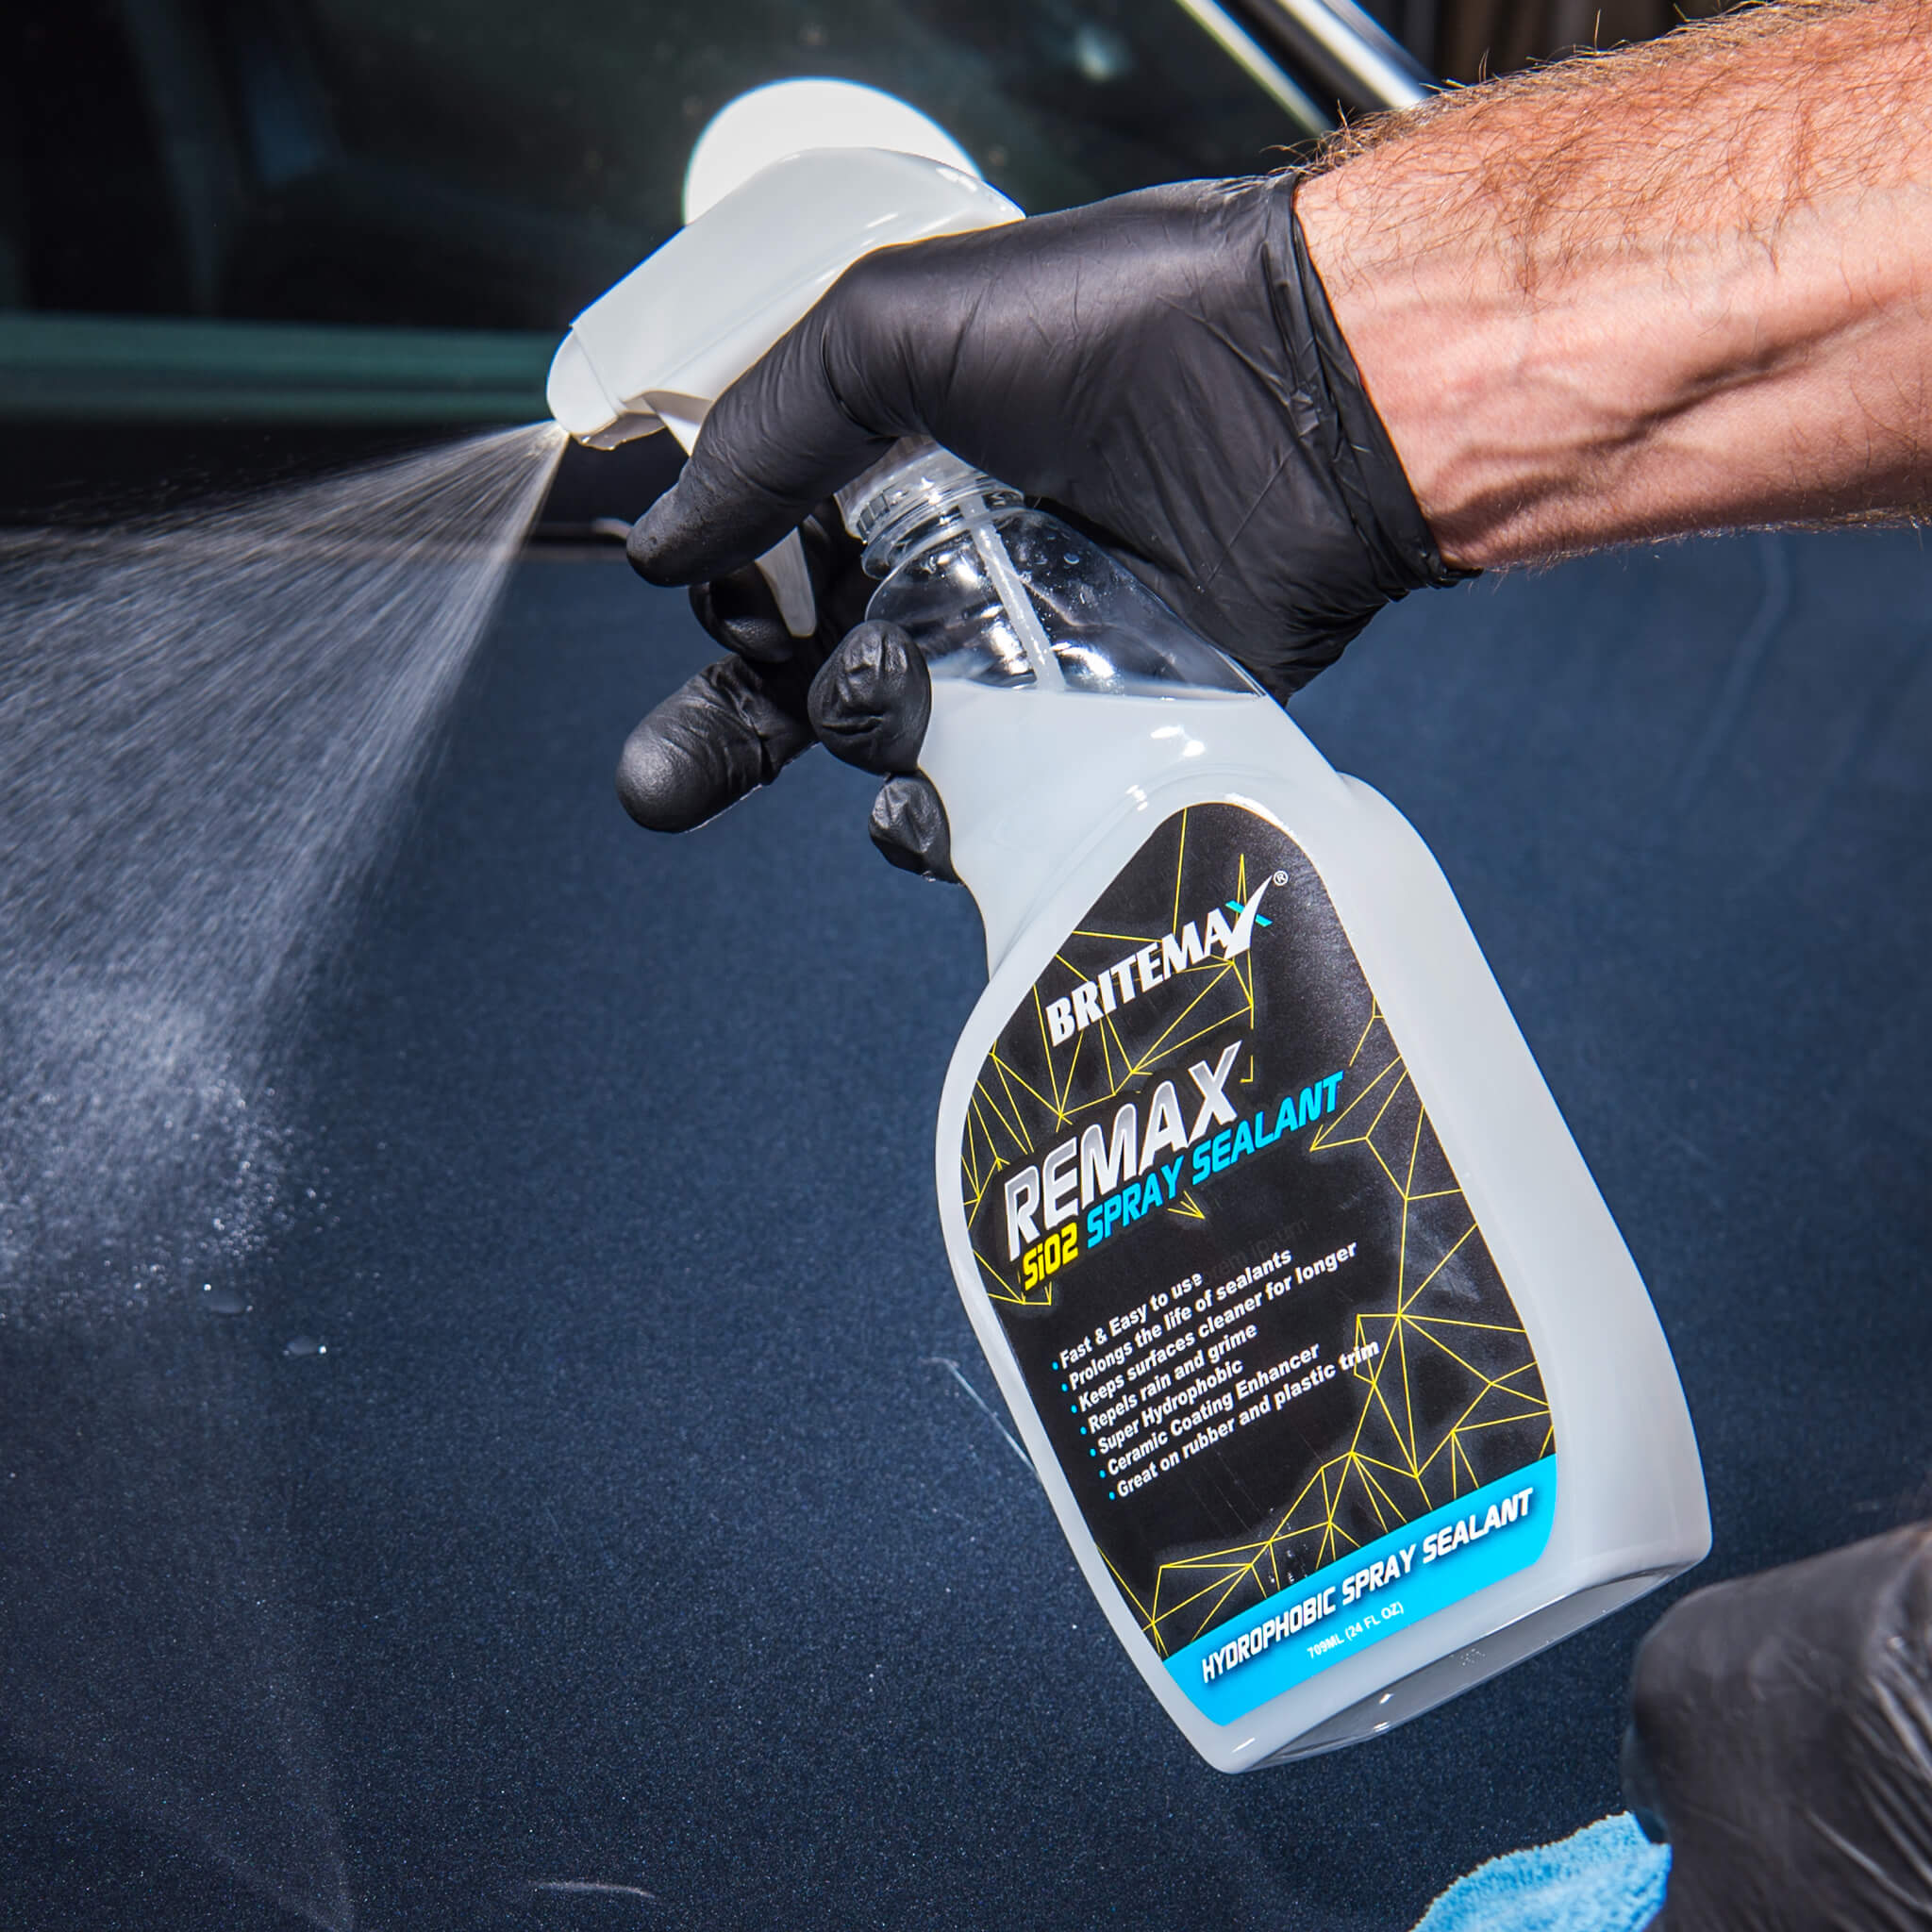 Britemax Remax Si02 Hydrophobic Car Detailing Spray Sealant